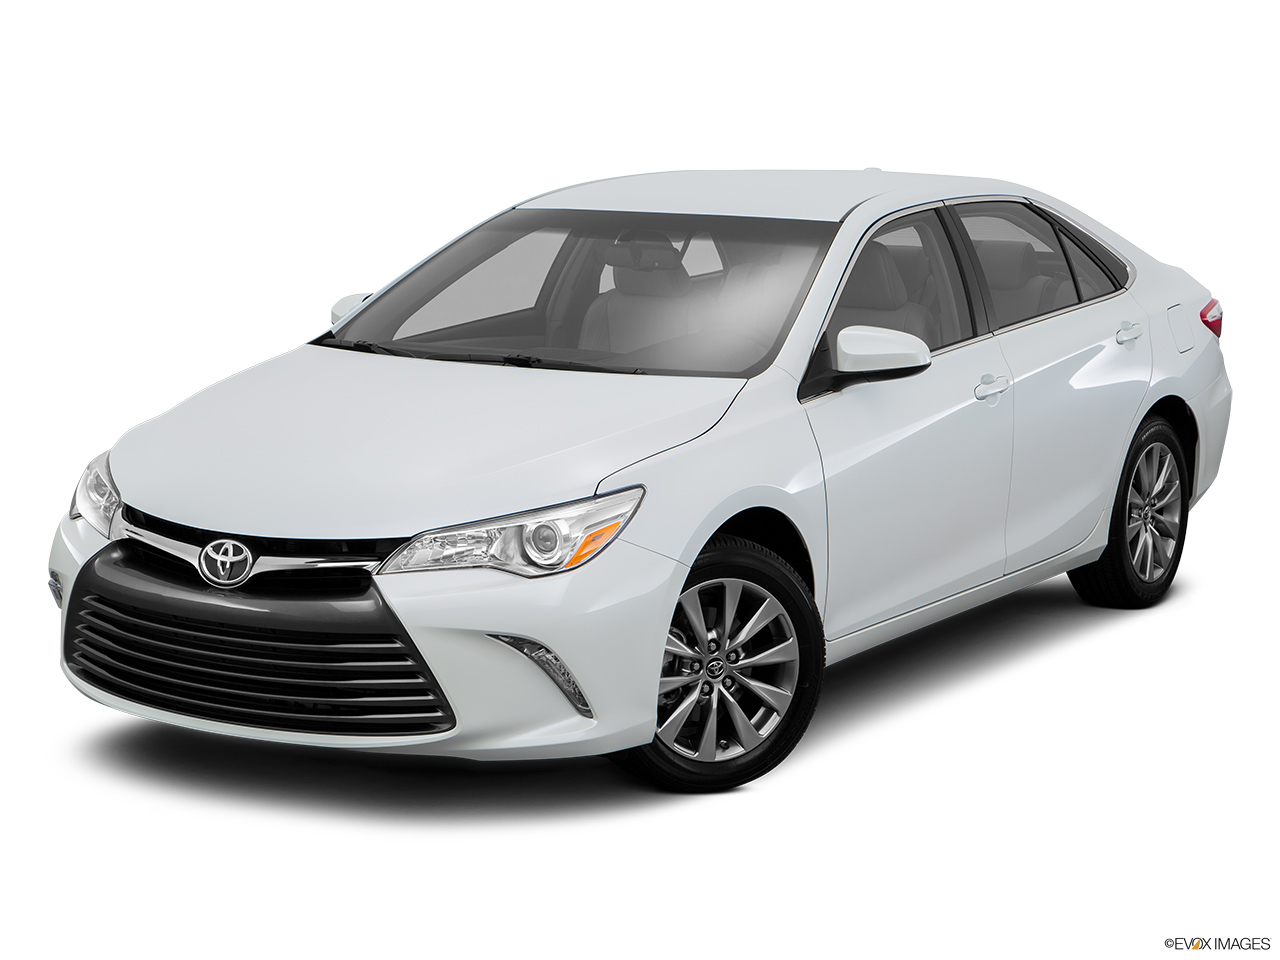 used natl island new sale car se ny sdn bzfvemgtgiq available queens long woodside for jersey in auto camry toyota